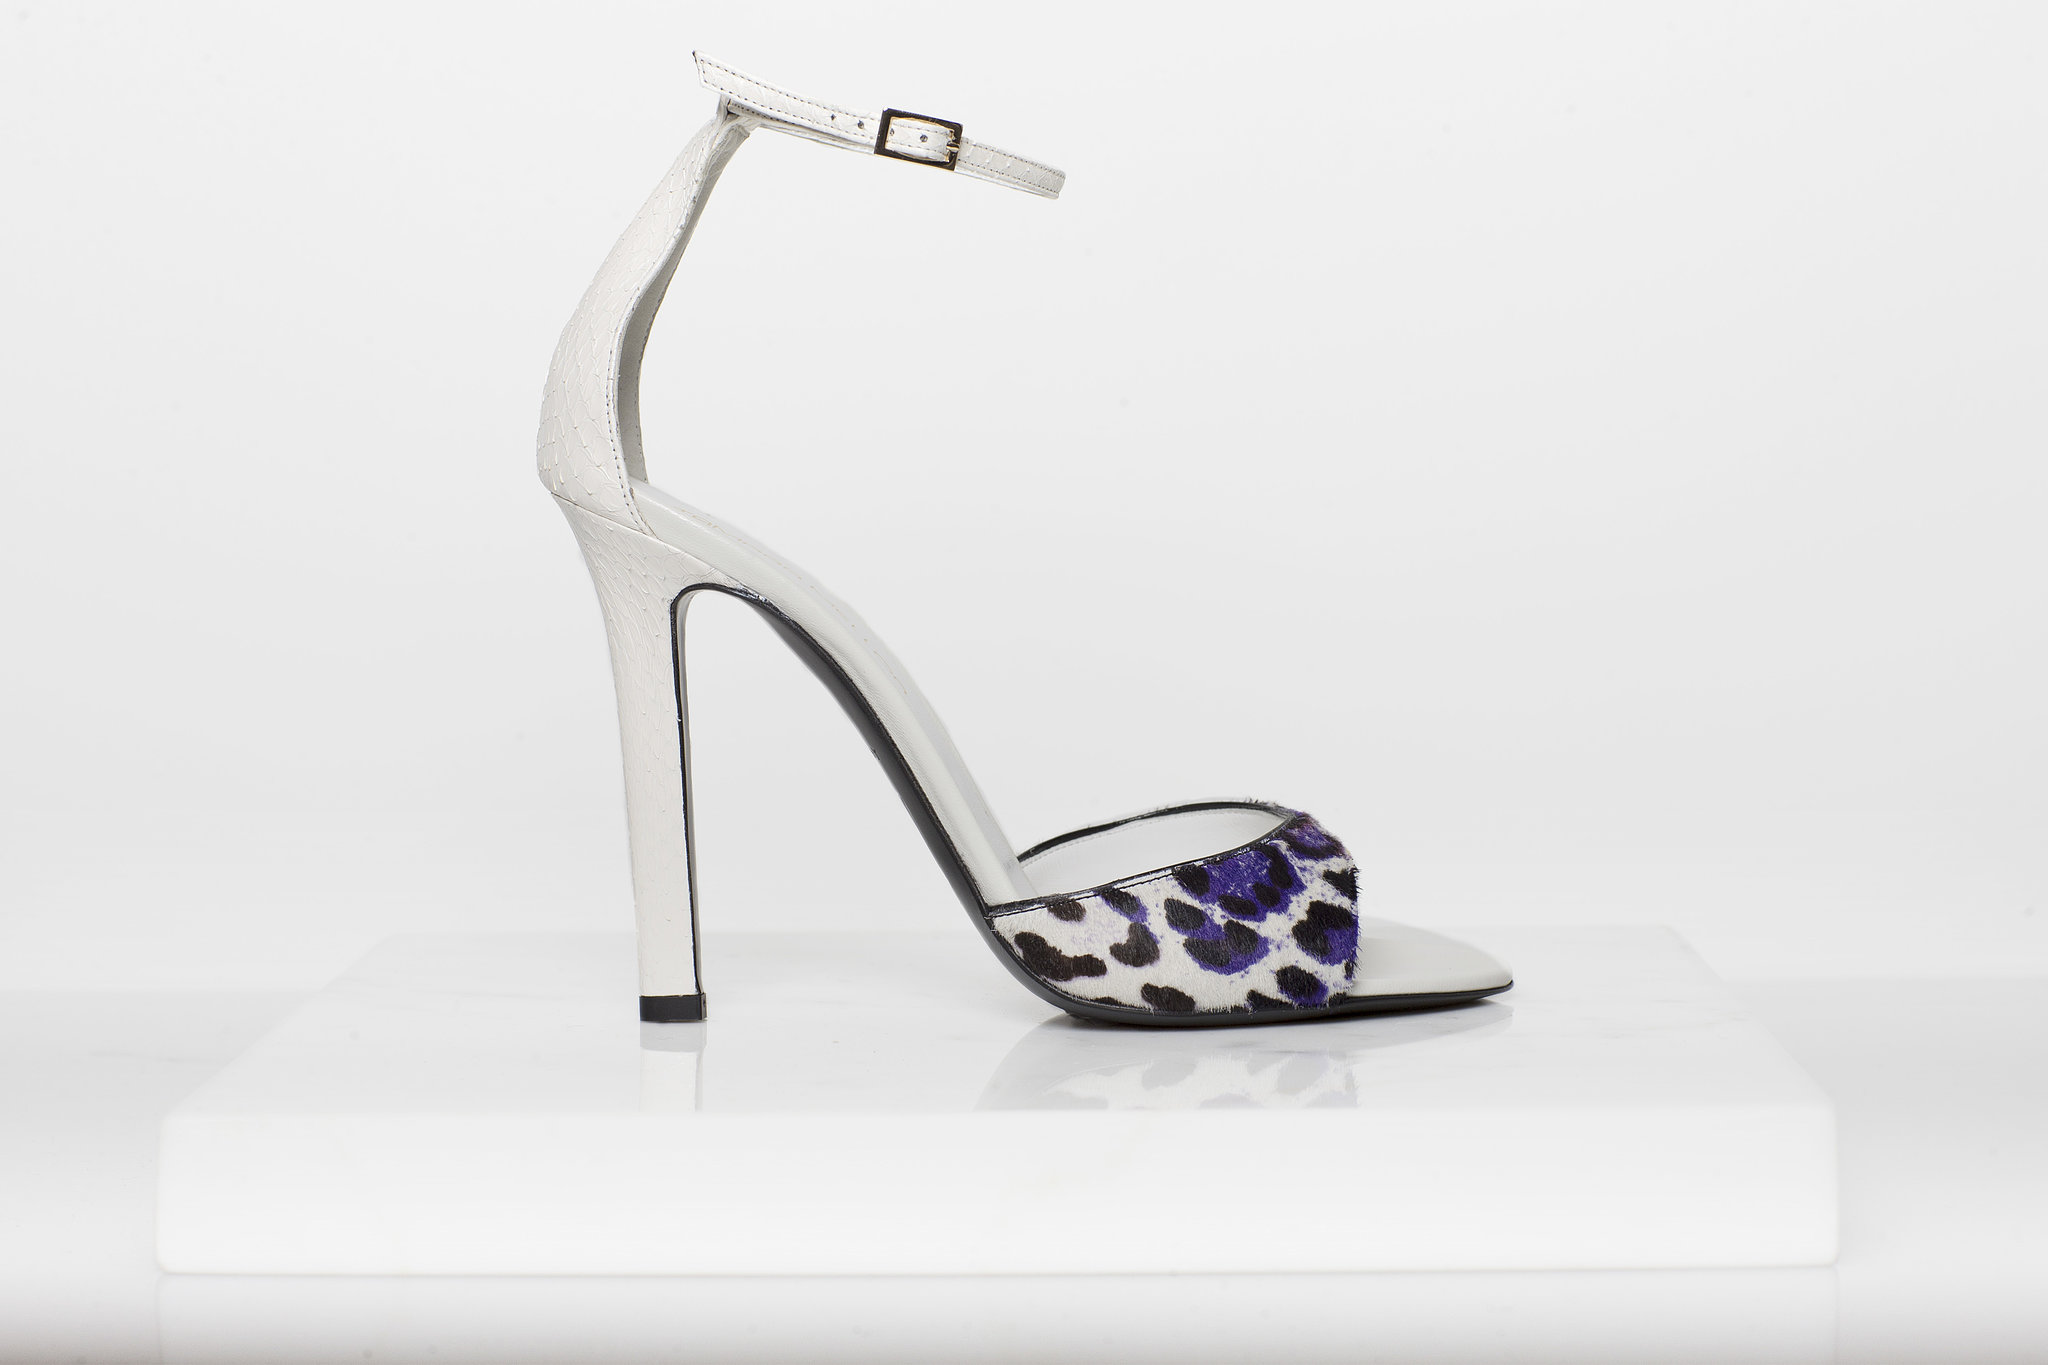 Wild Night Pony Sandal in Purple/Cream Leopard With Cream Watersnake Trim ($750) Photo courtesy of Tamara Mellon